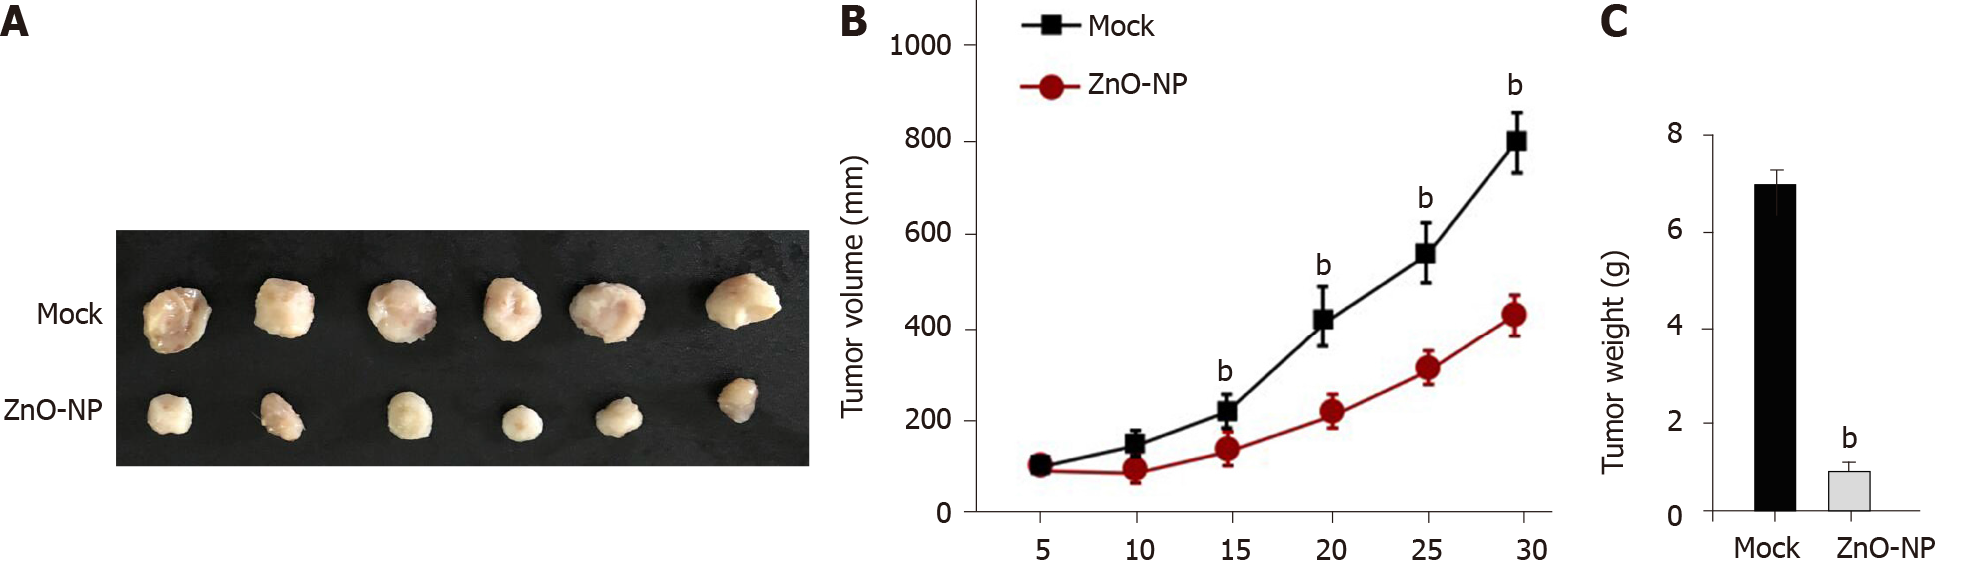 Zinc oxide nanoparticles reduce the chemoresistance of